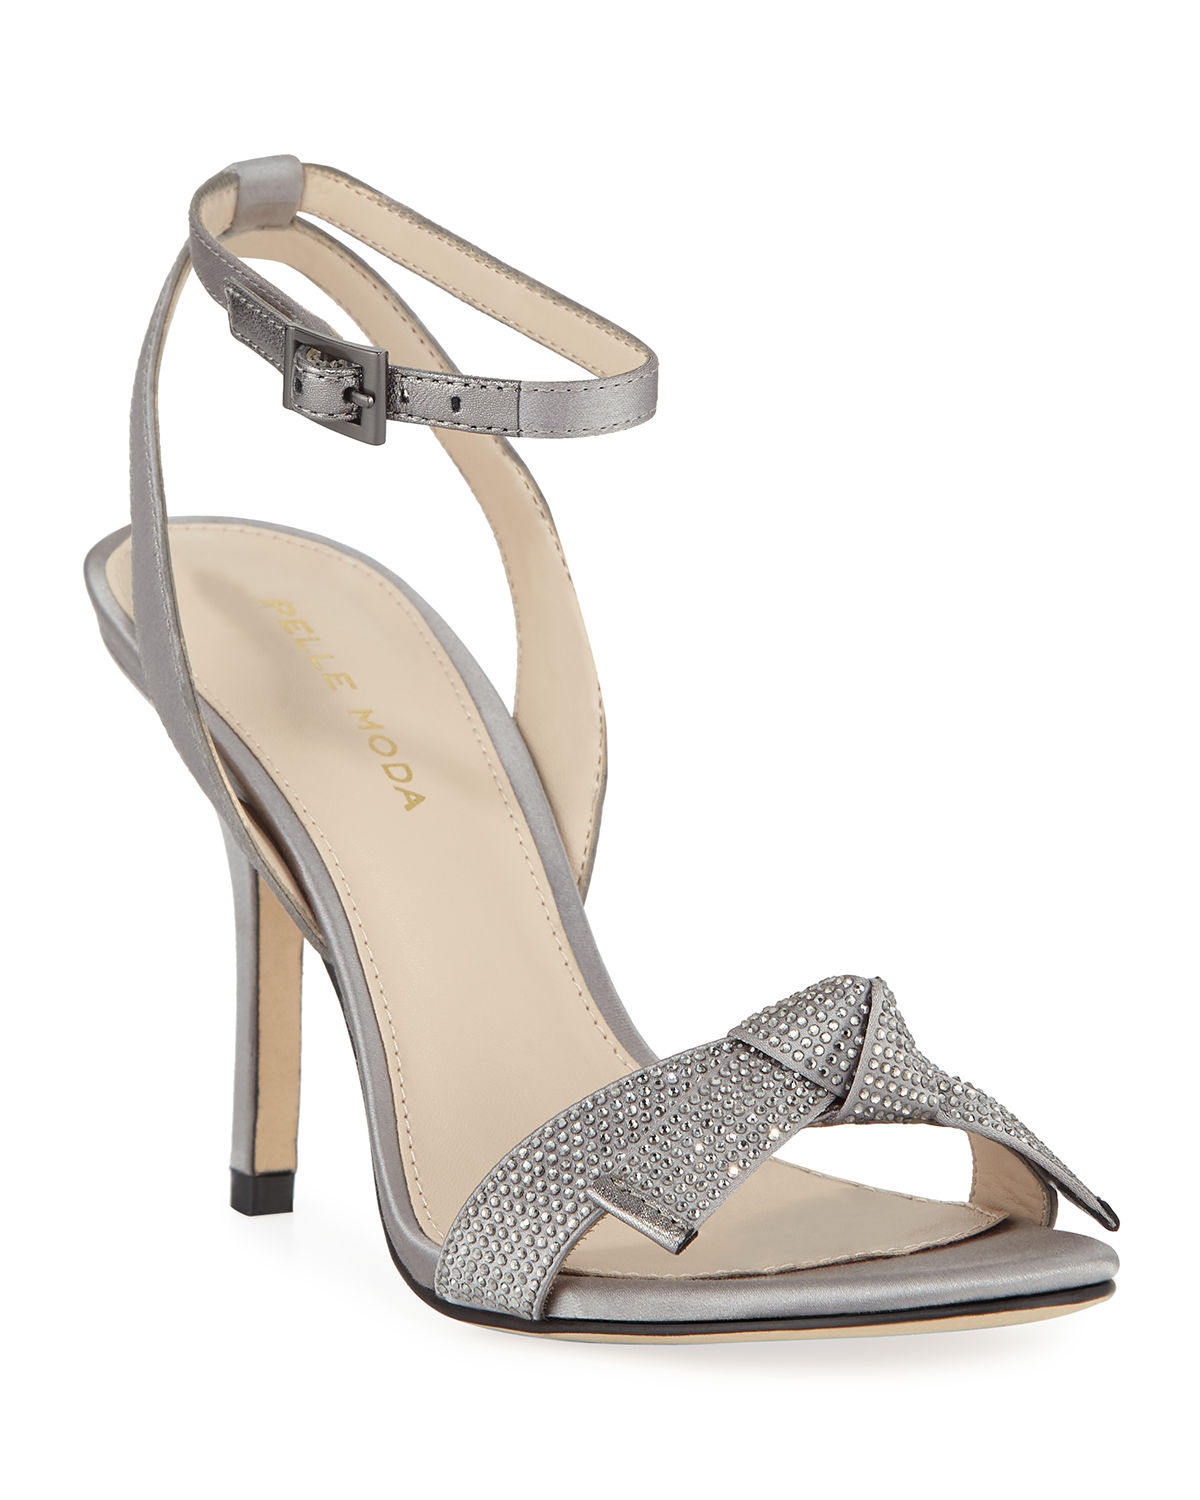 6827925750a Kim Jeweled-Strap High-Heel Sandals in Pewter